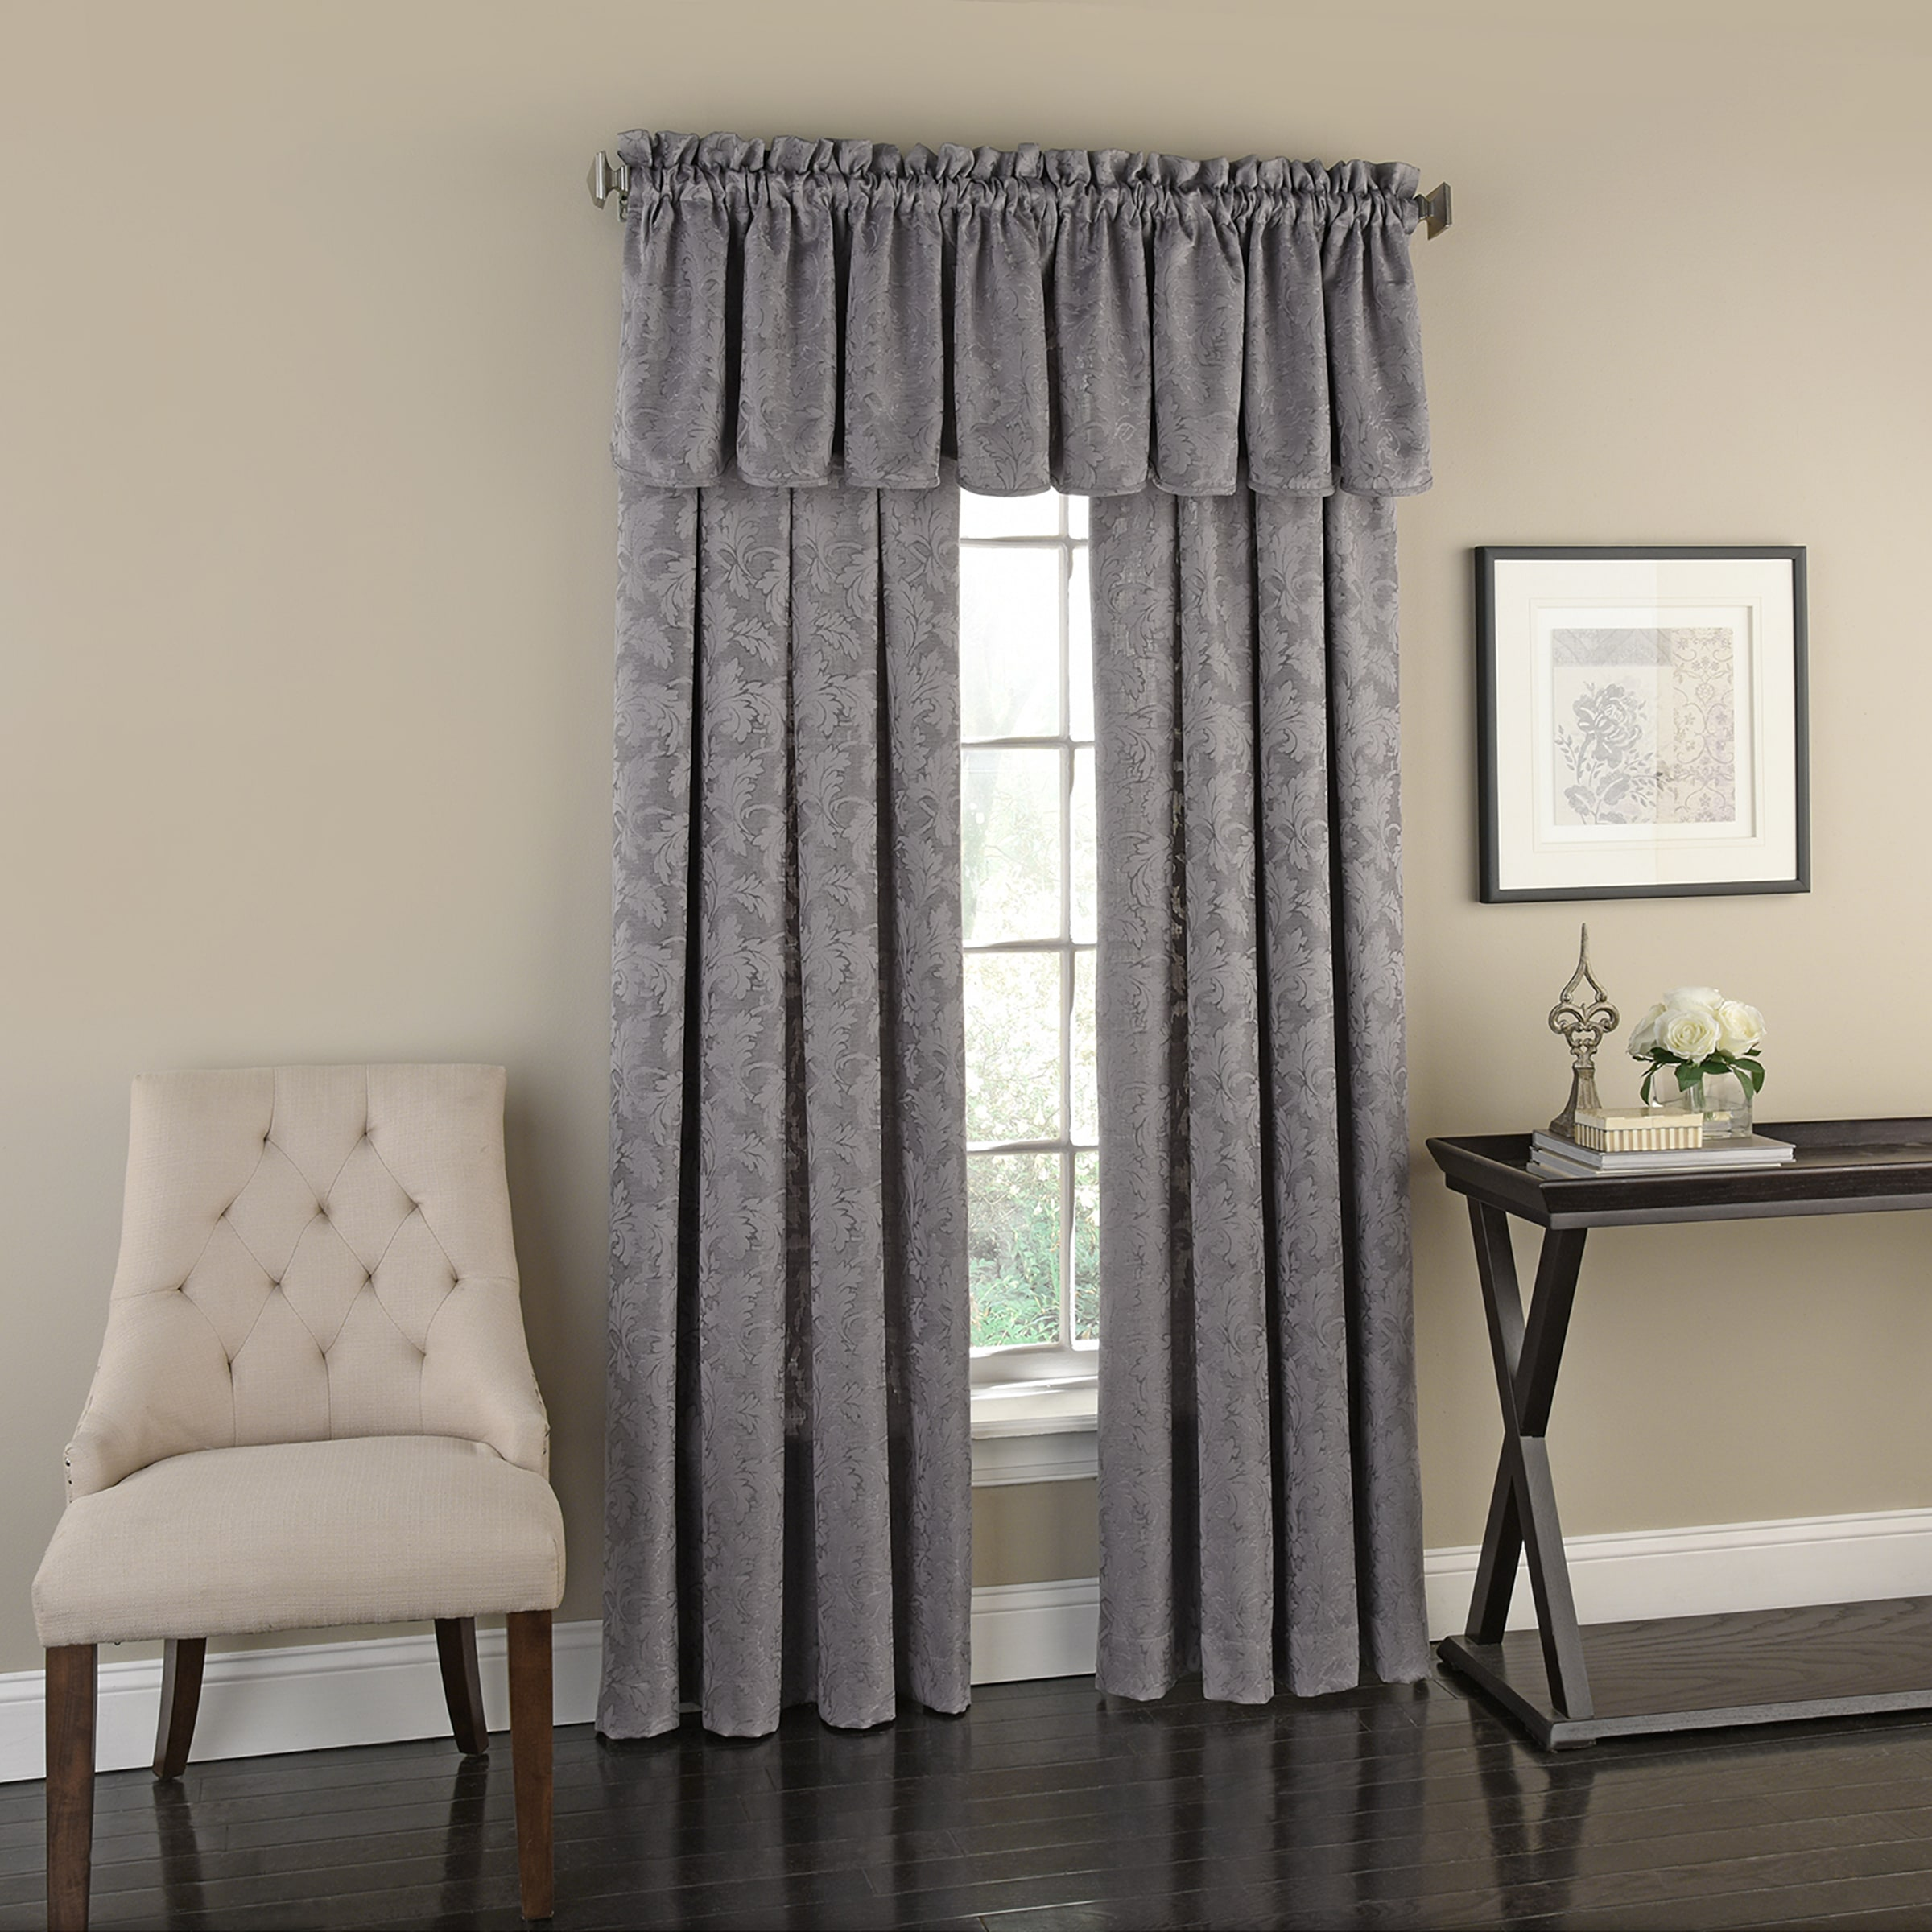 Flora Panel Featured with Valance